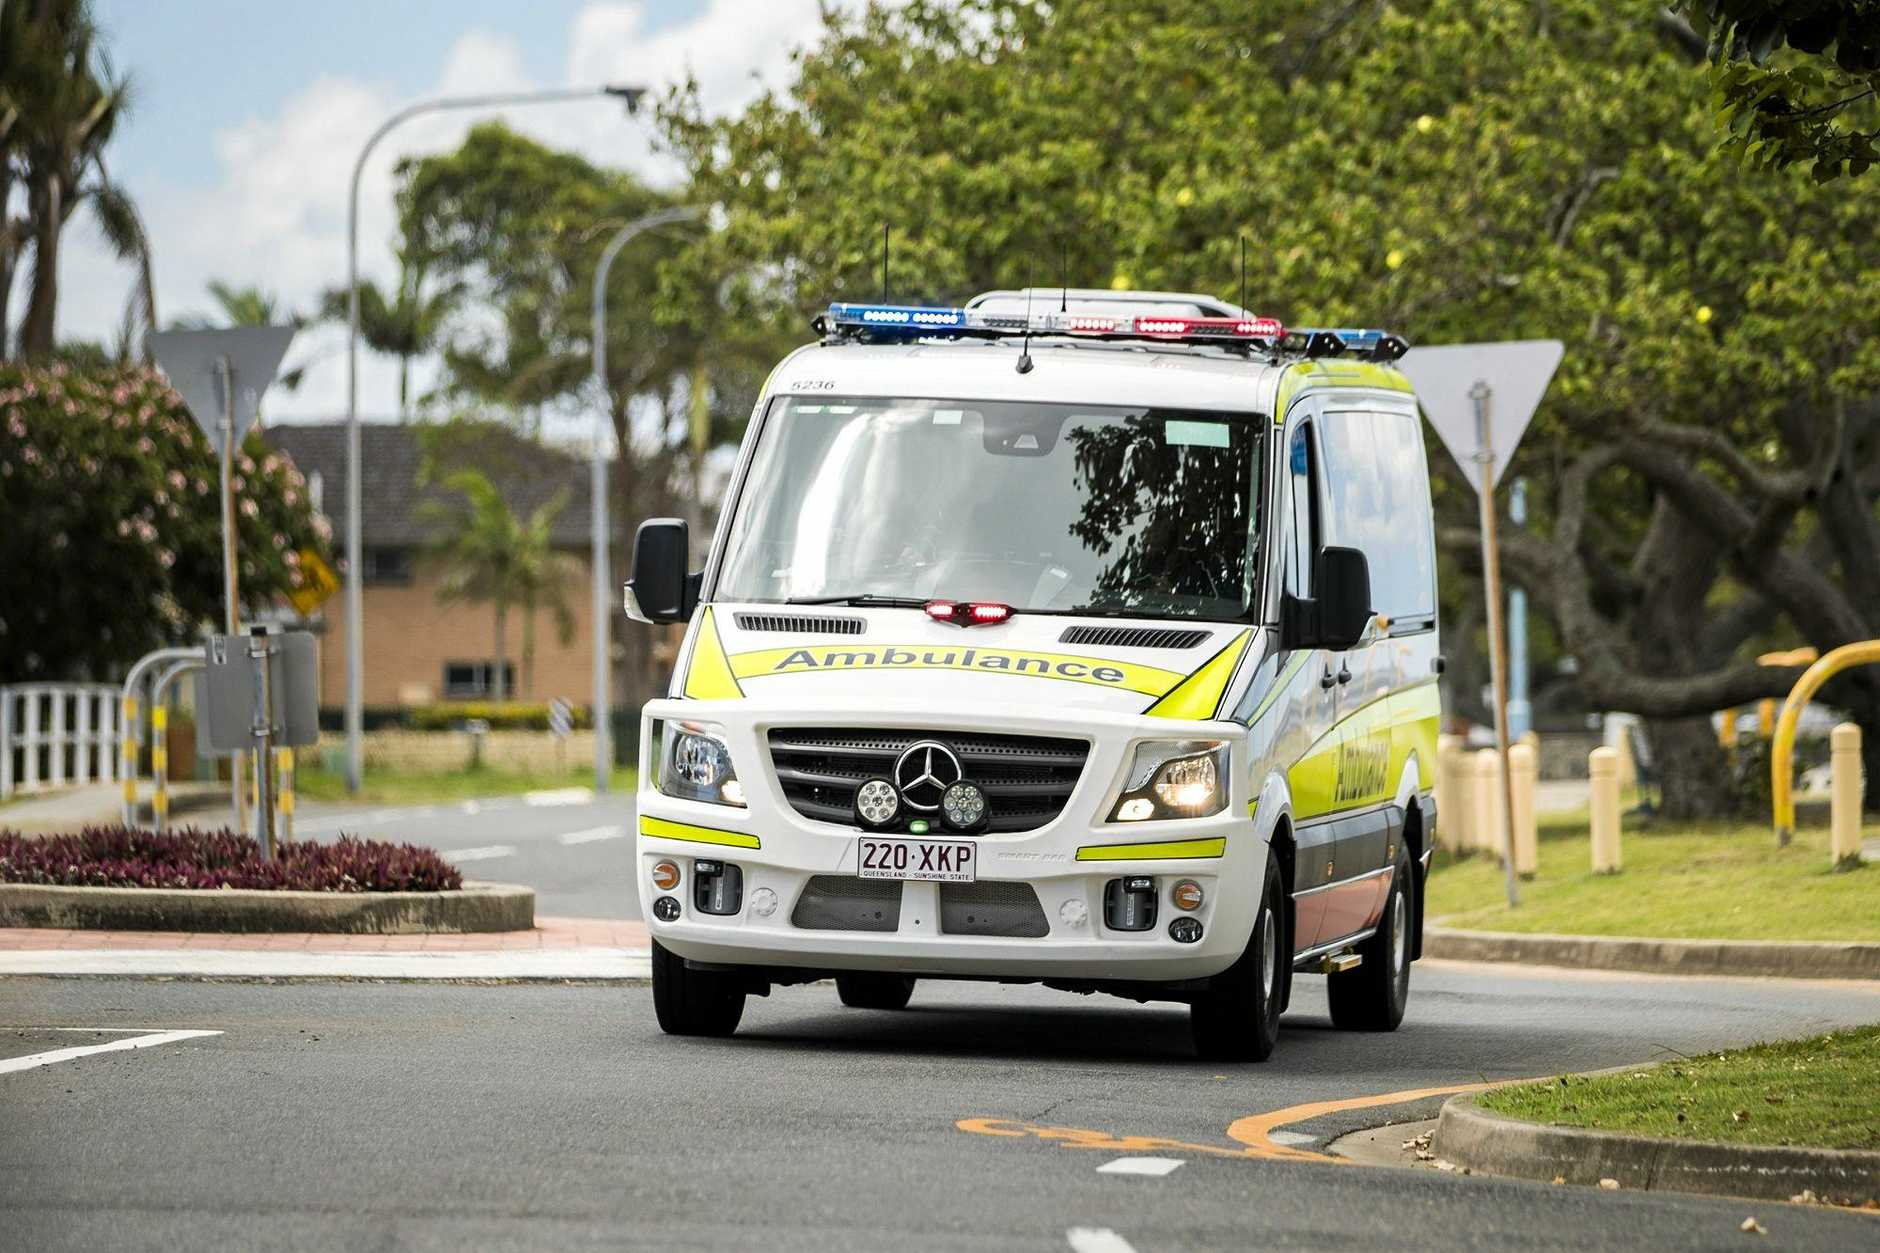 Queensland Ambulance Service